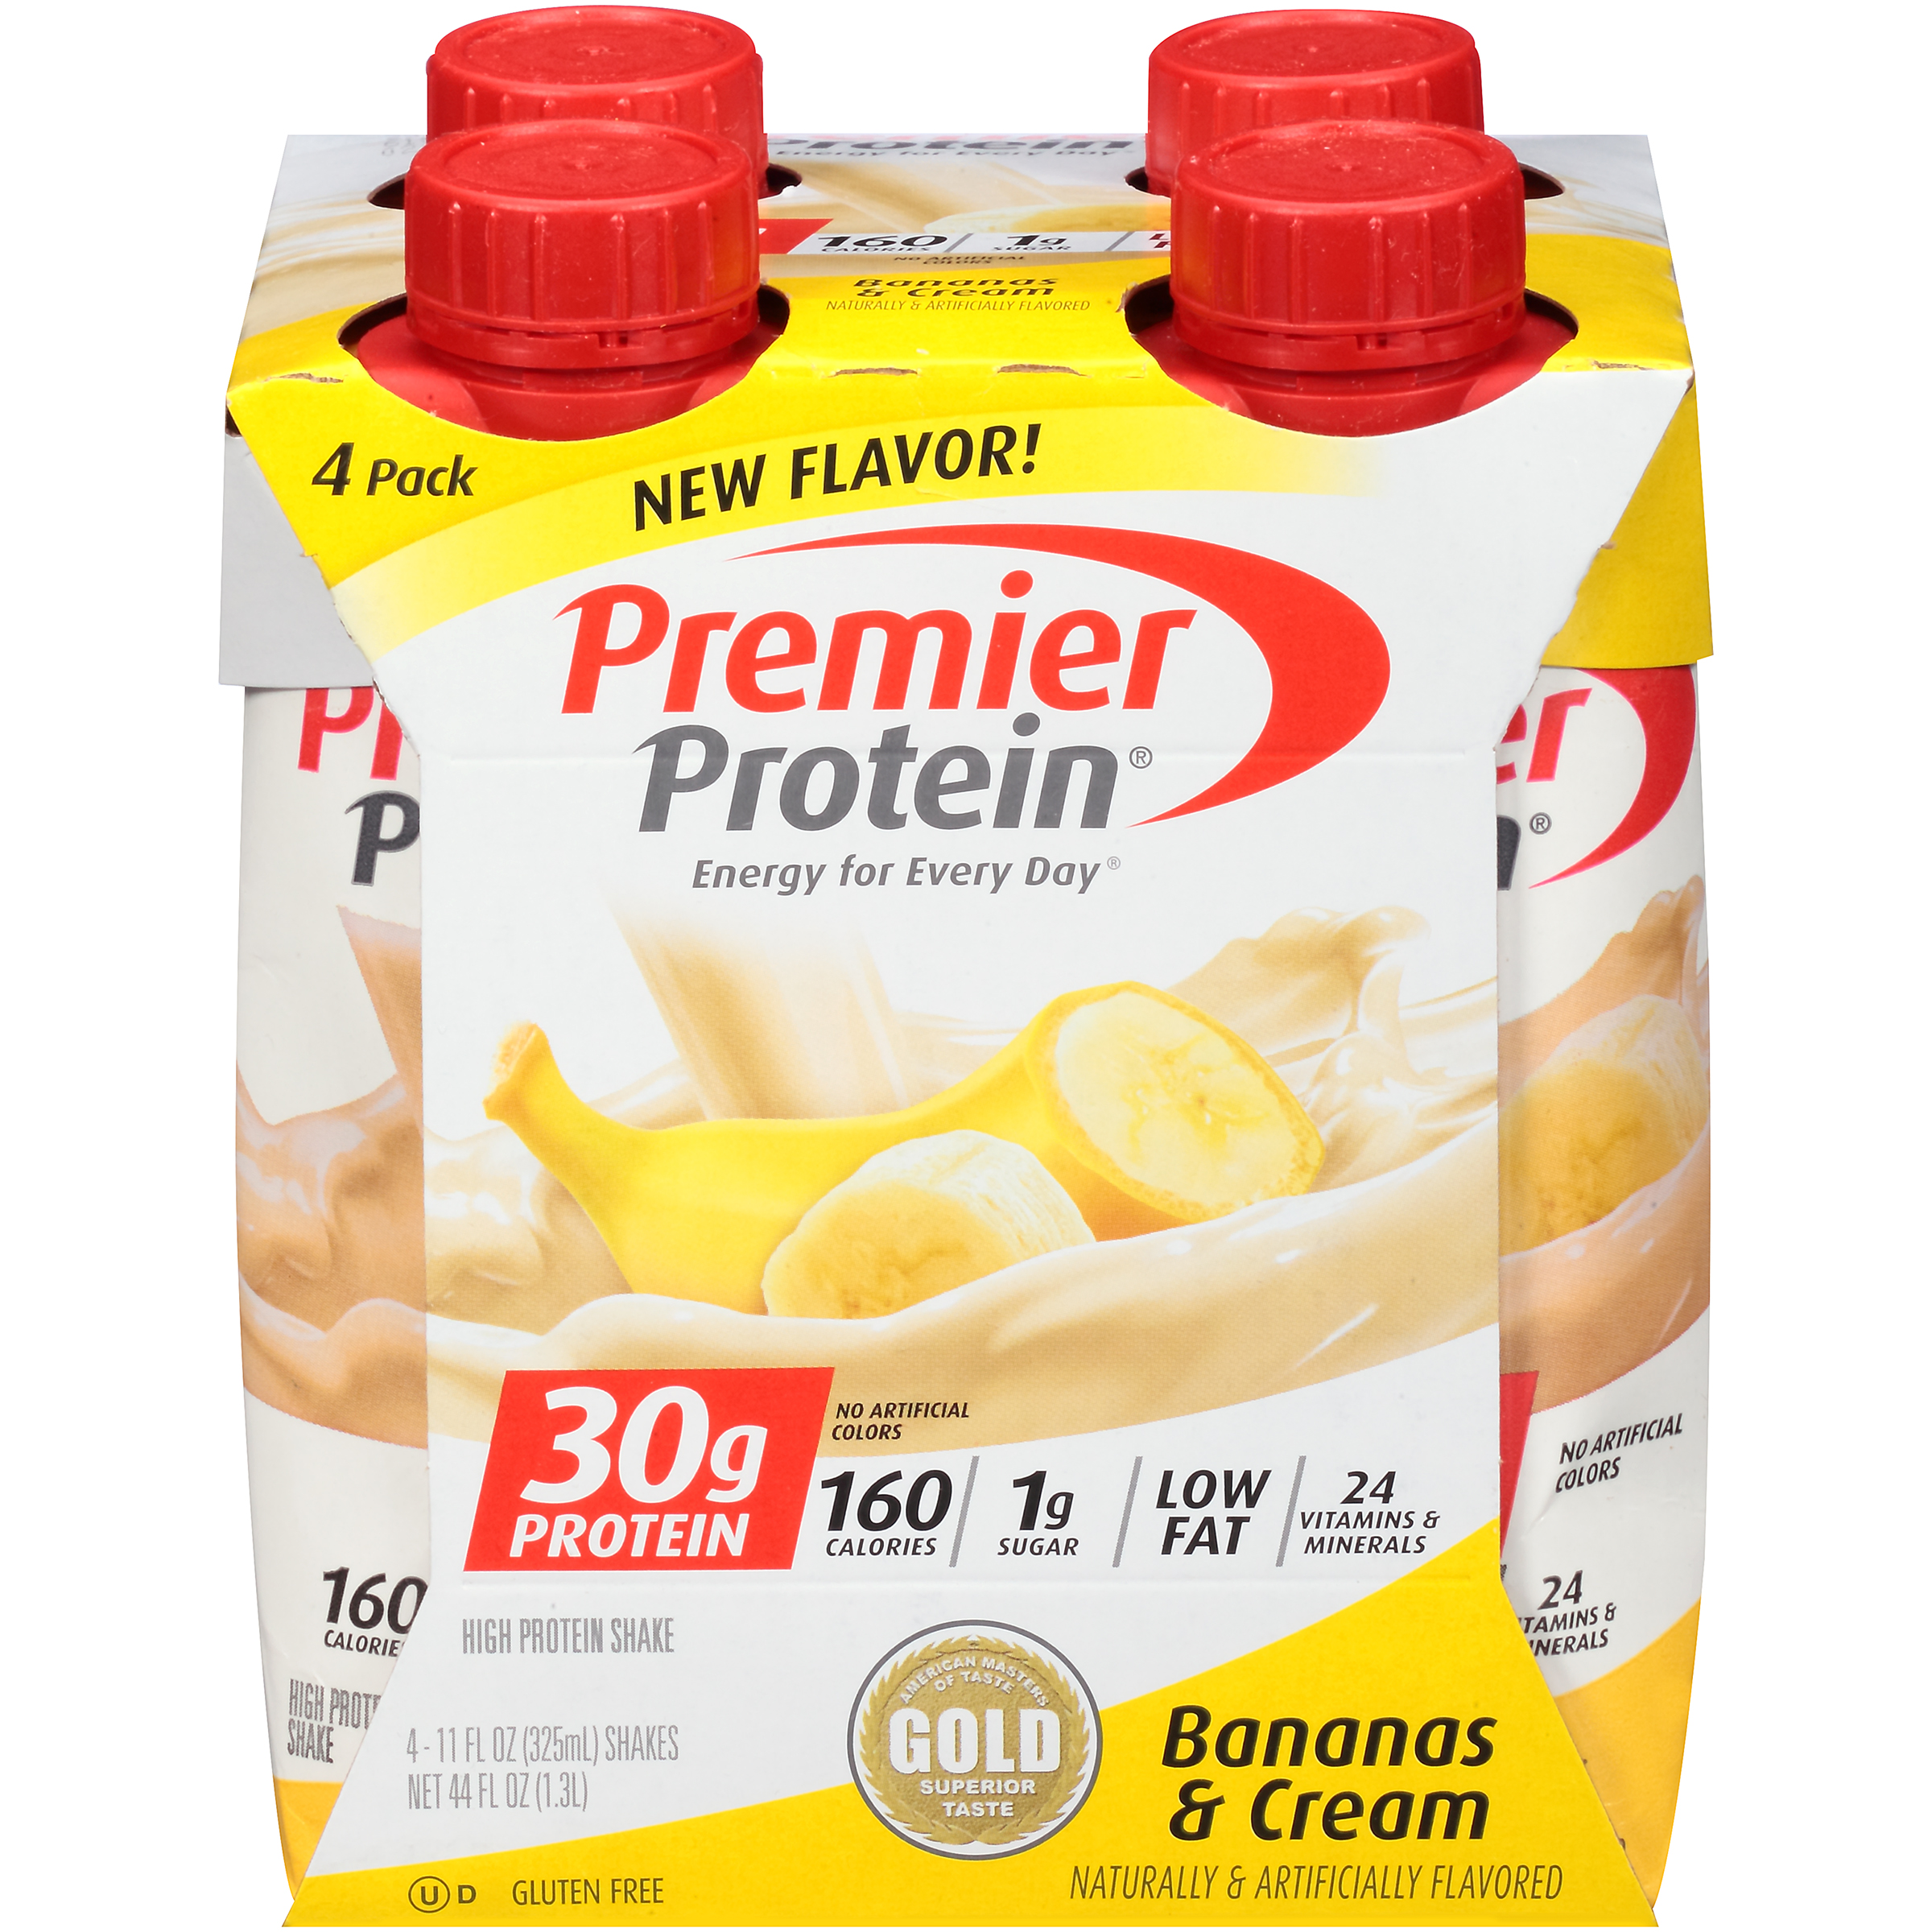 Premier Protein Shake 30 Grams Of Bananas Cream 11 Oz 4 Ct